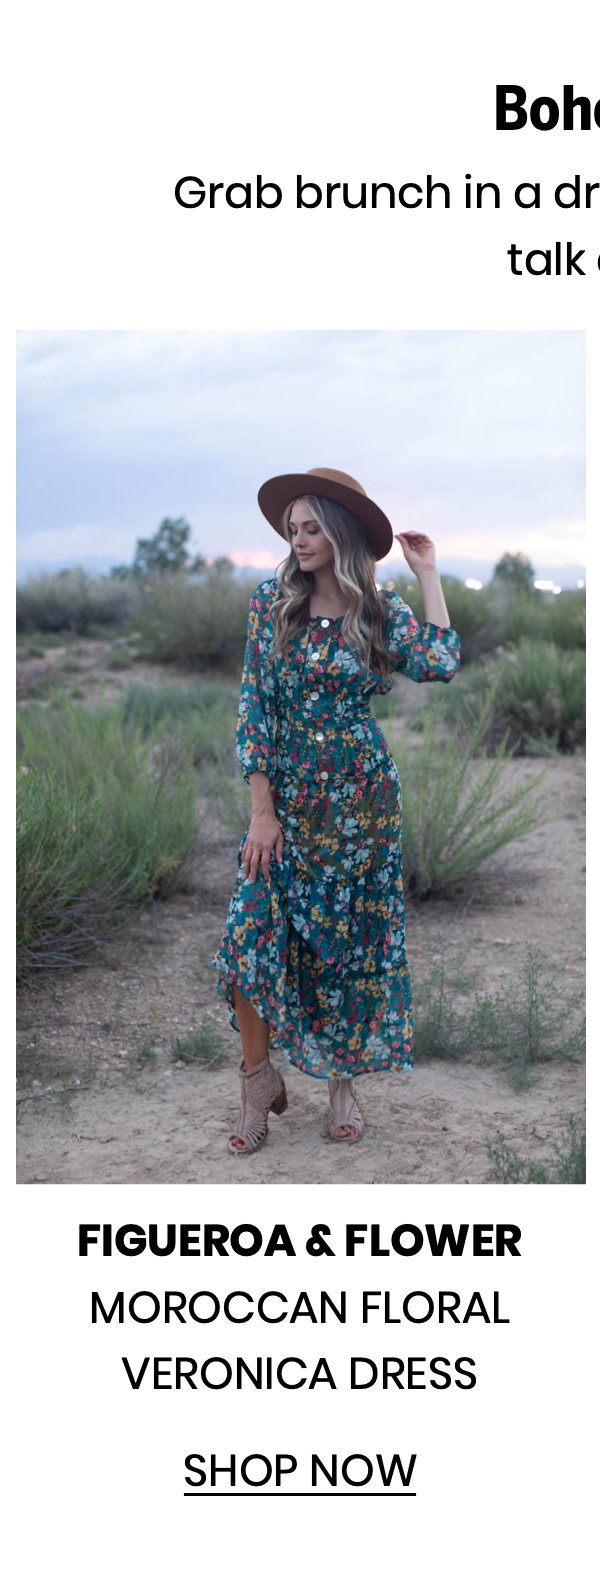 """Shop the """"Moroccan Floral Veronica Dress"""" by Figueroa & Flower"""